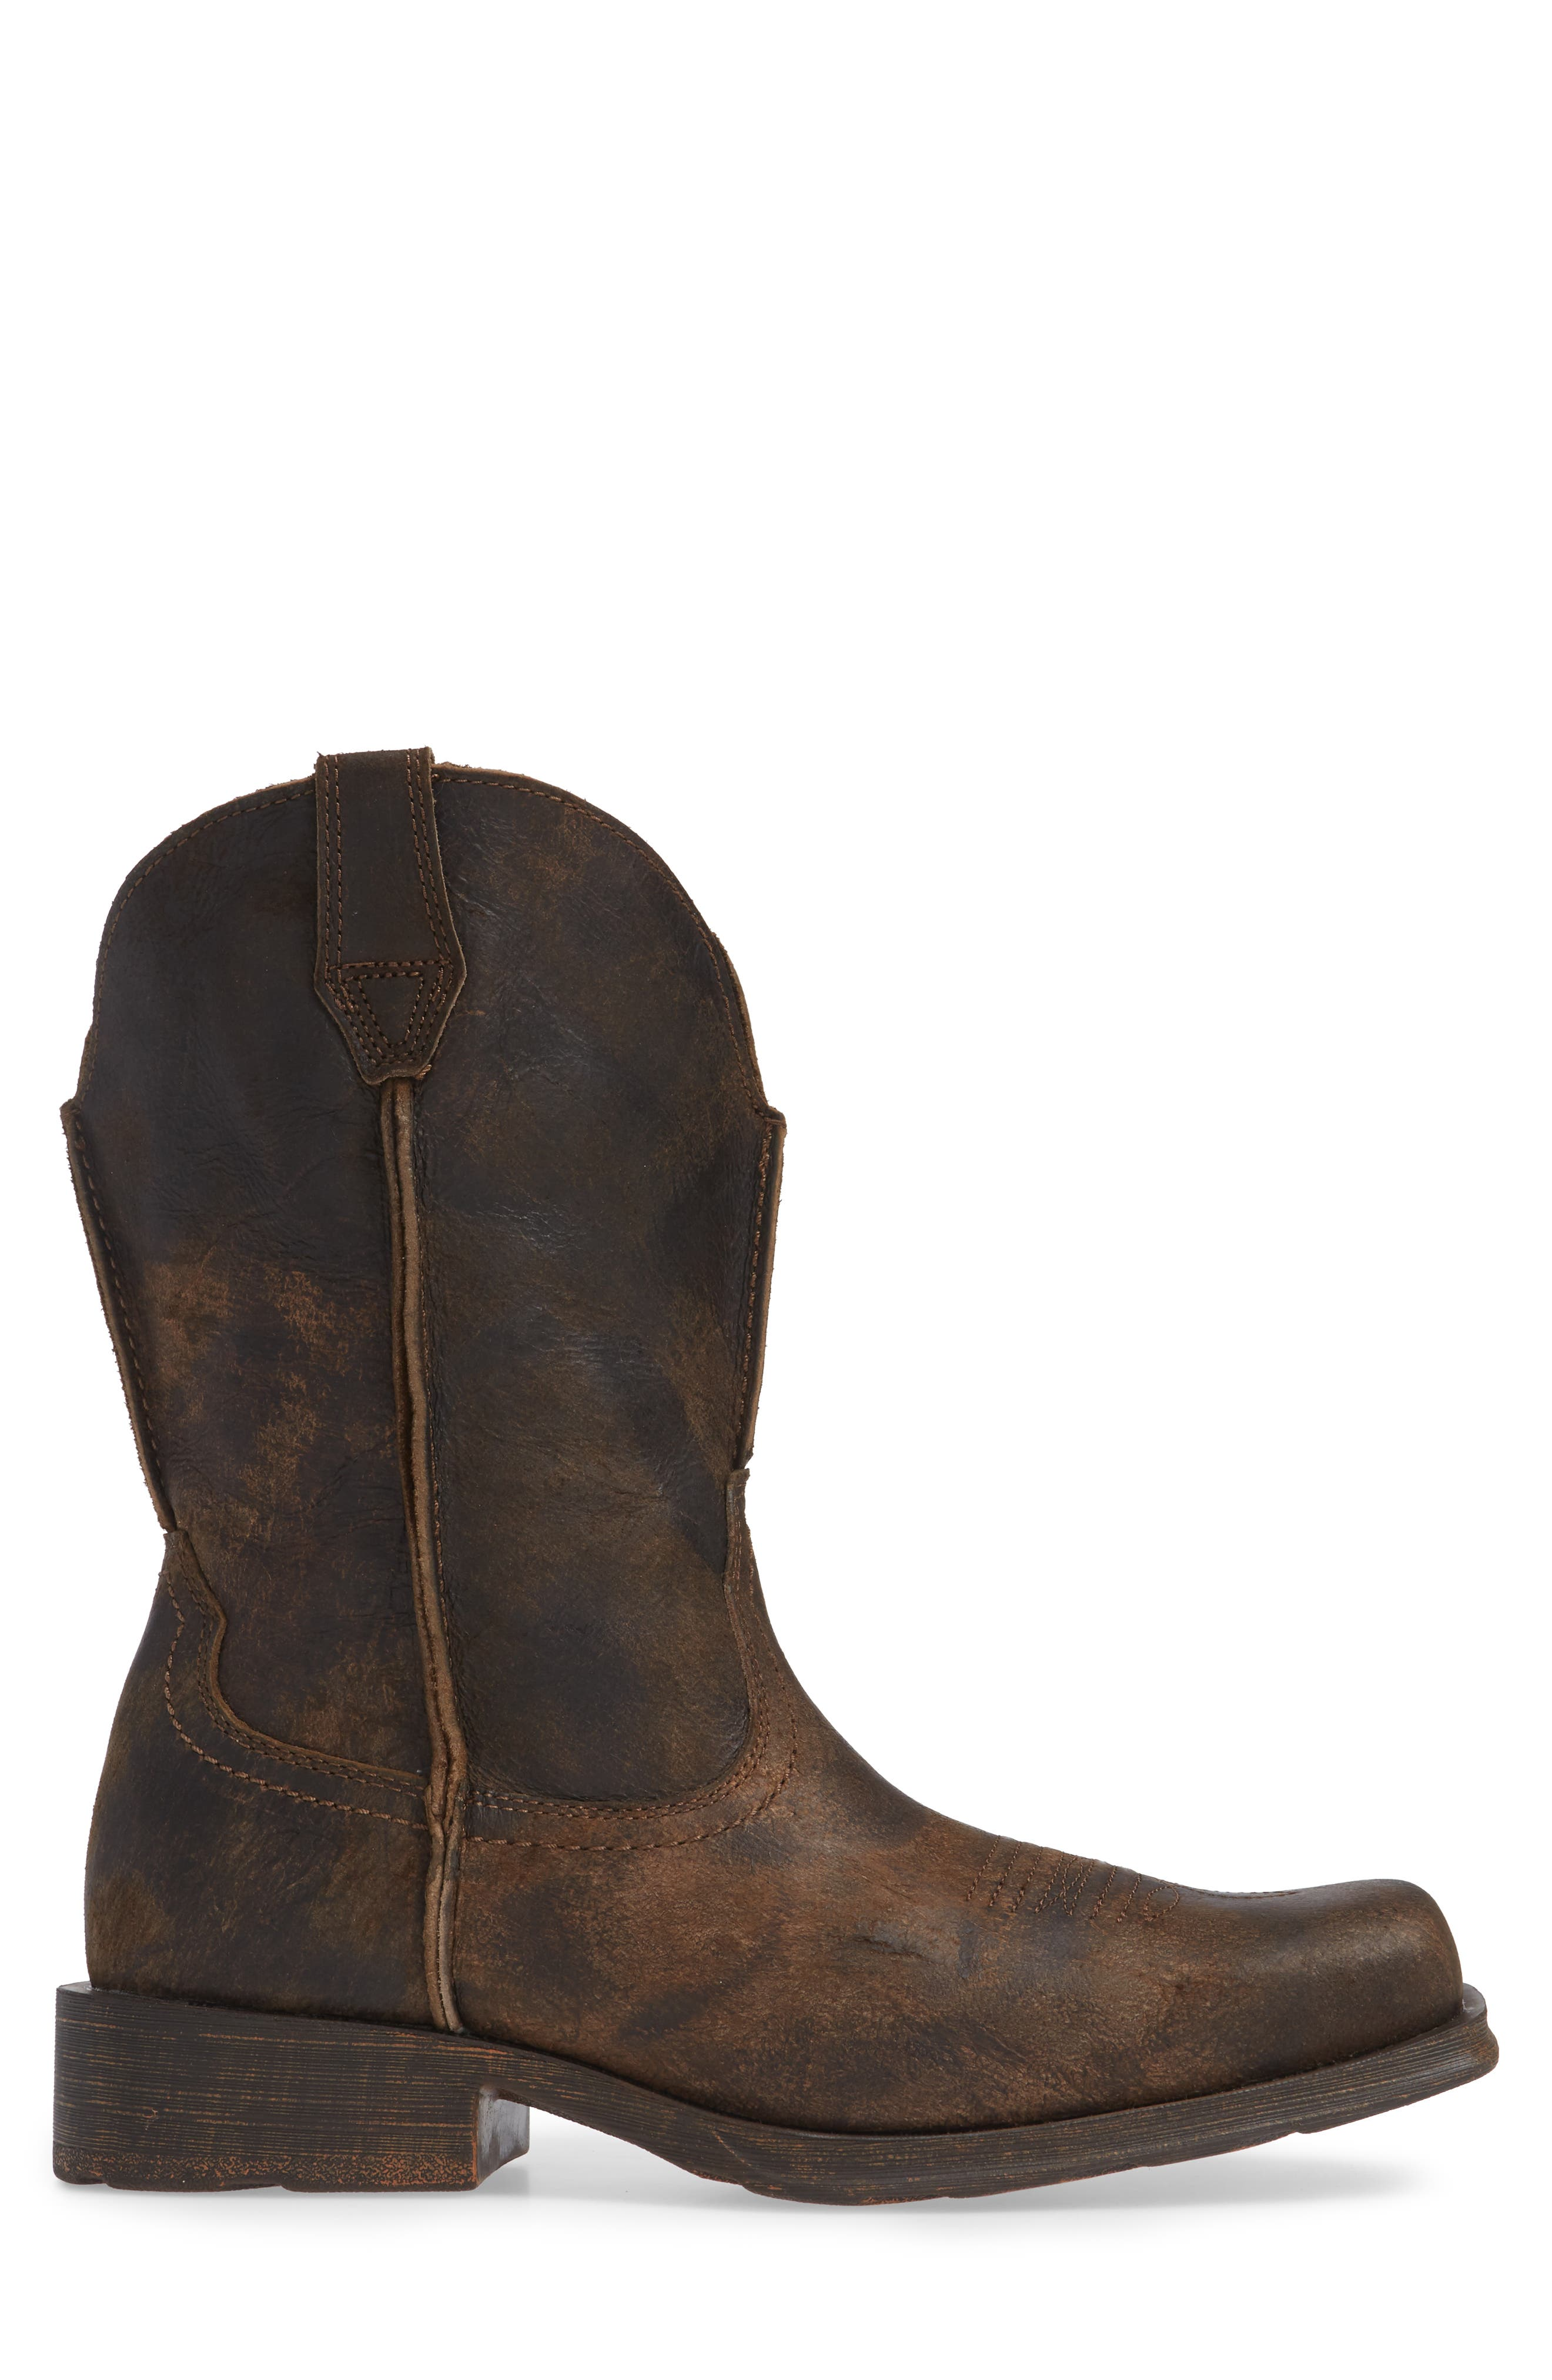 ARIAT, Rambler Boot, Alternate thumbnail 3, color, ANTIQUE GREY LEATHER